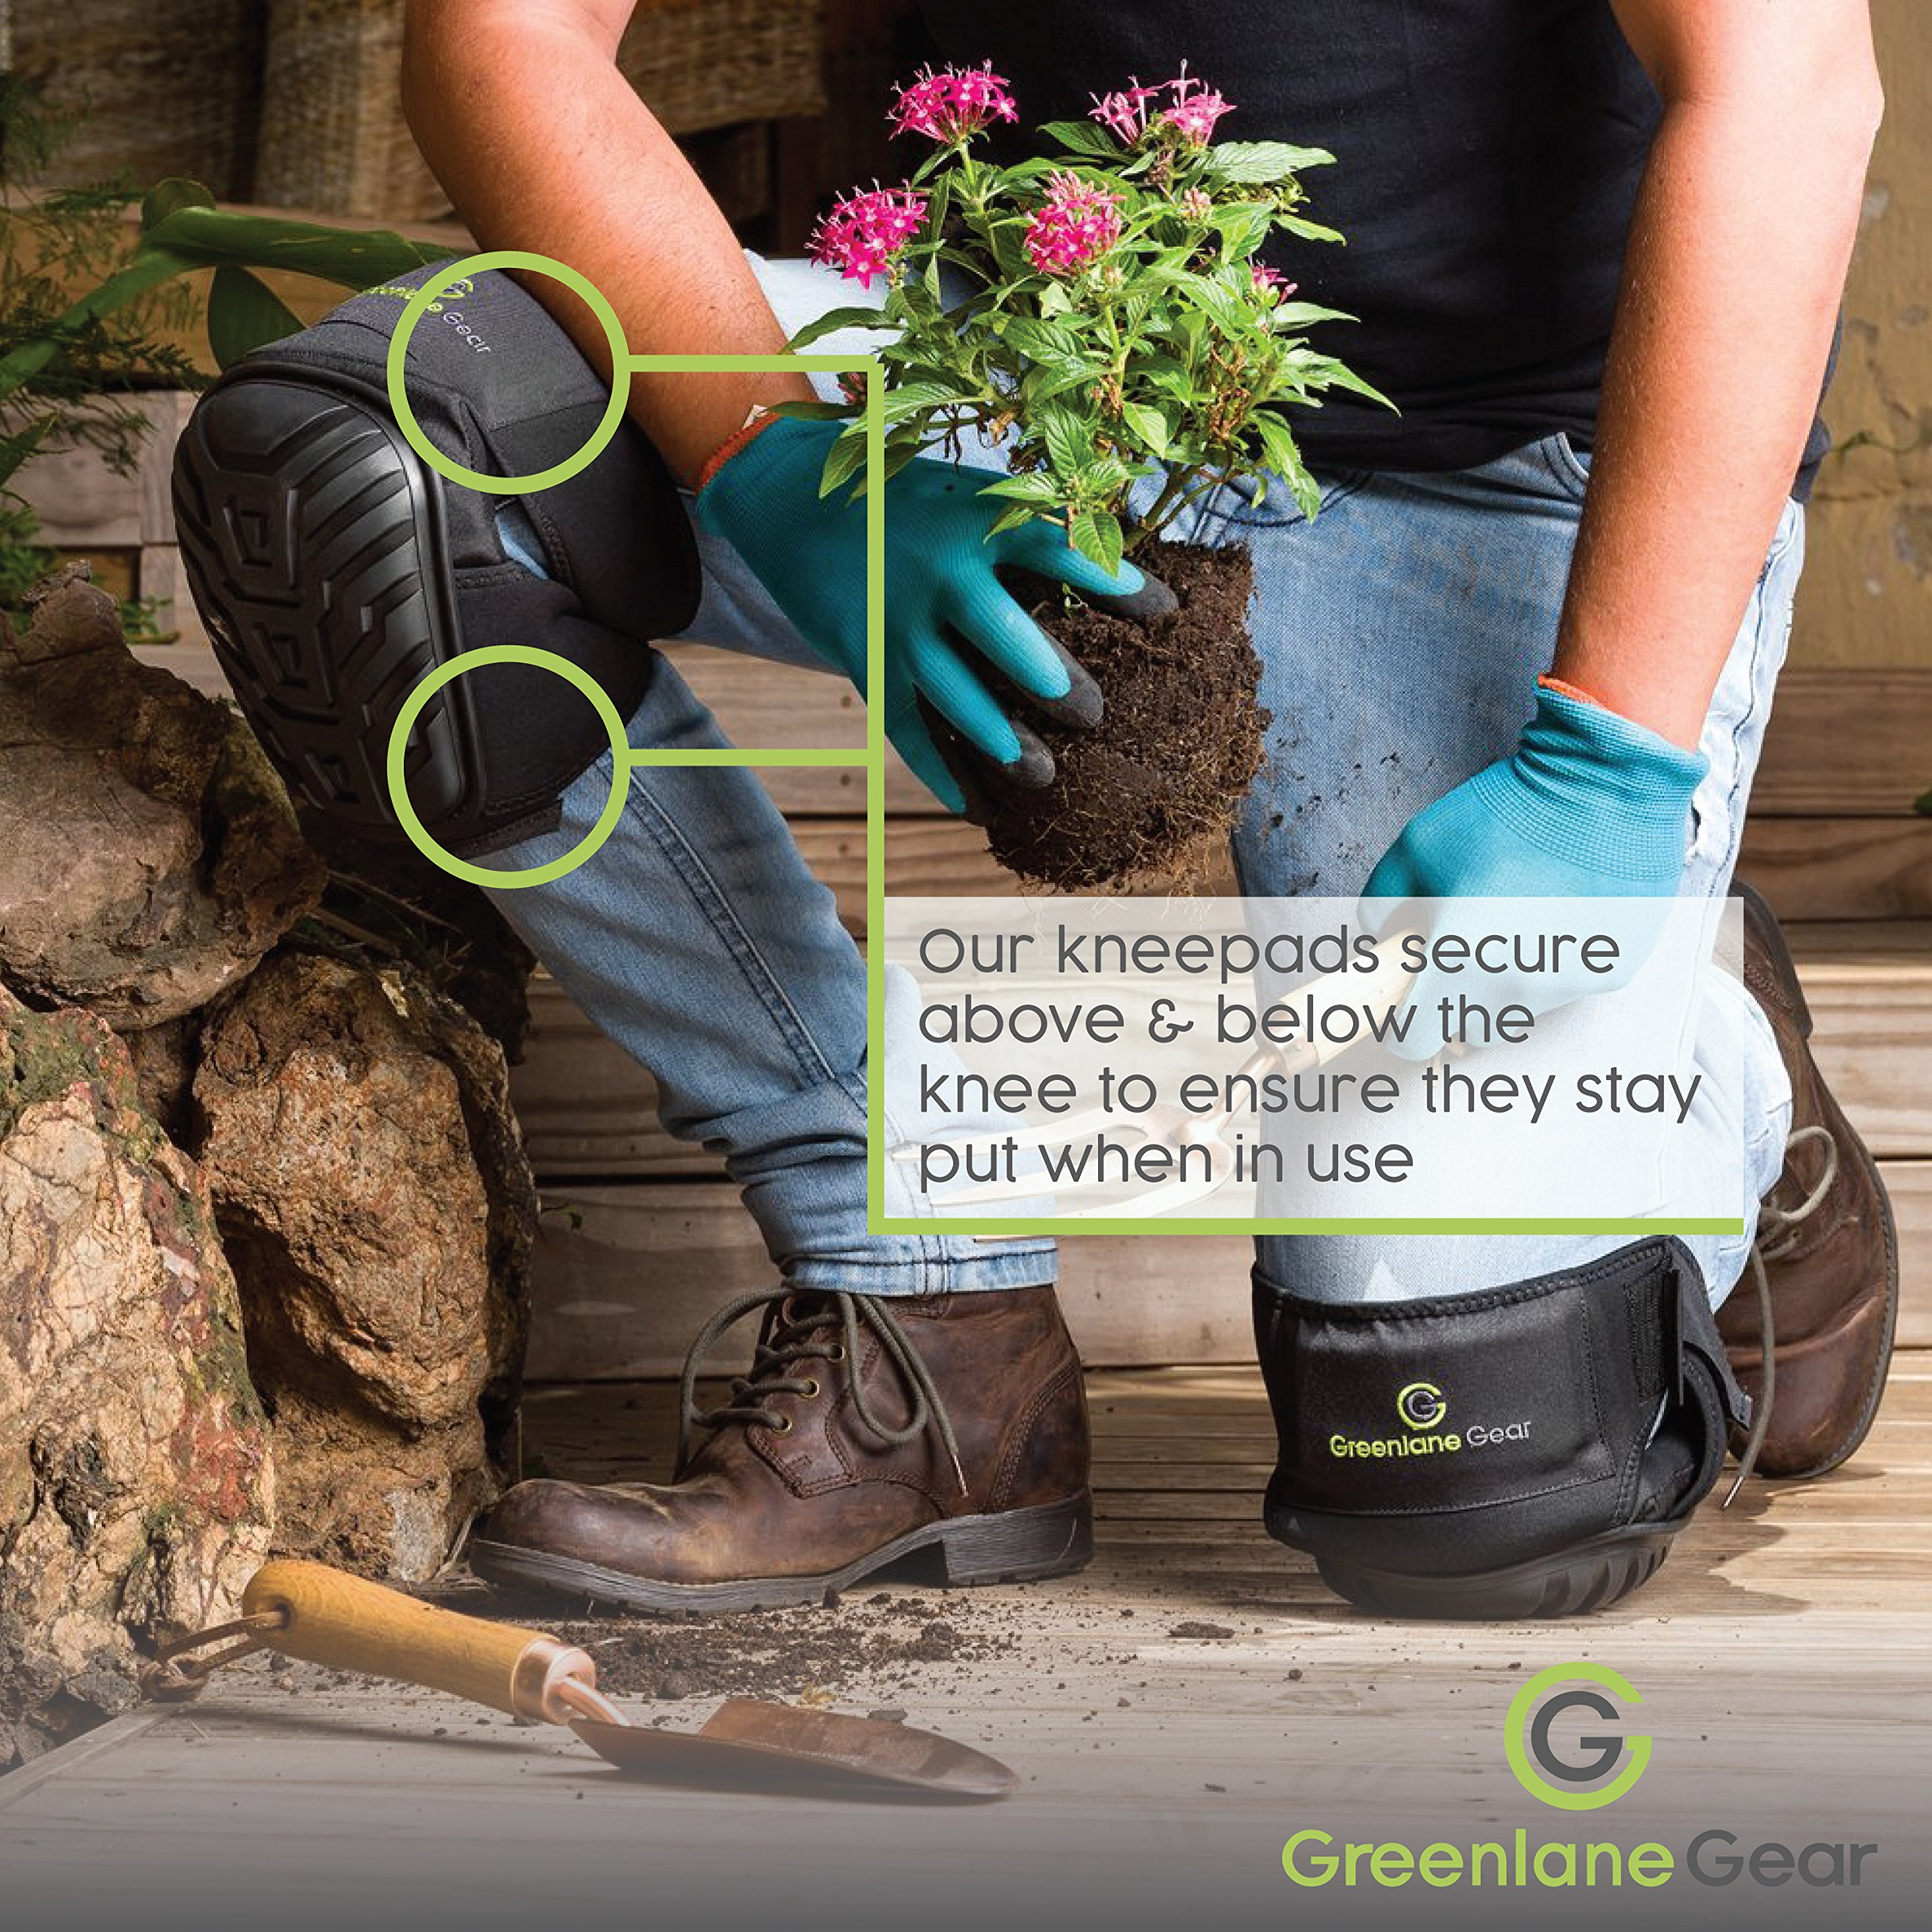 Gel Knee Pads for work designed to prevent slipping/sliding for gardening, construction, floor, tiling - Industrial grade heavy duty flexible kneepad- soft kneepads fits all (small-large) men/women by Greenlane Gear (Image #4)